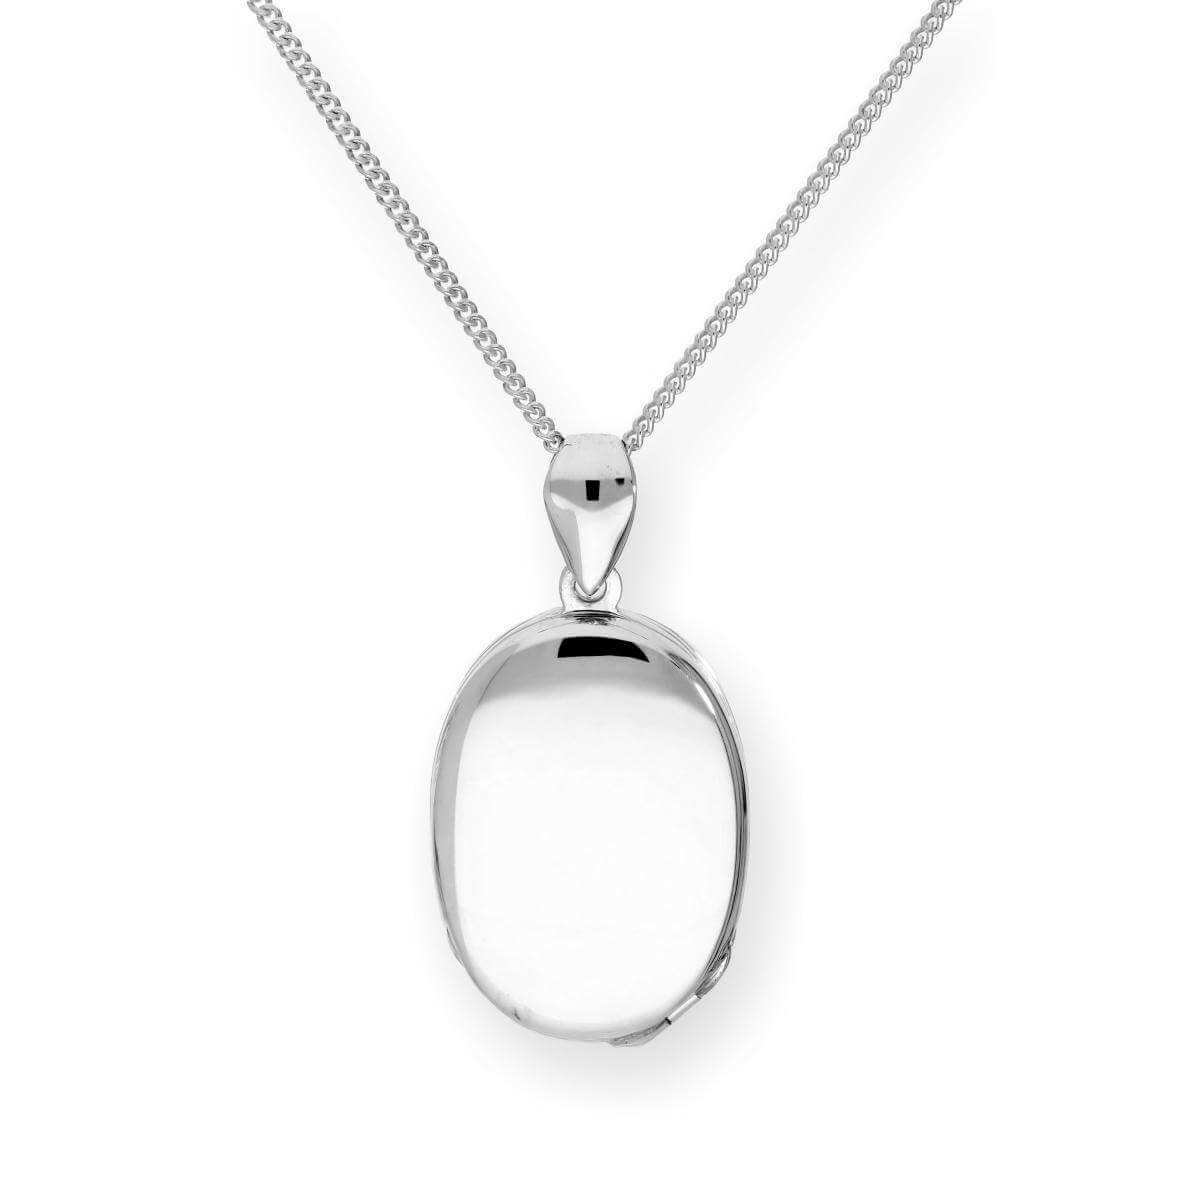 Sterling Silver 4 Photo Oval Family Locket on Chain 16 - 24 Inches